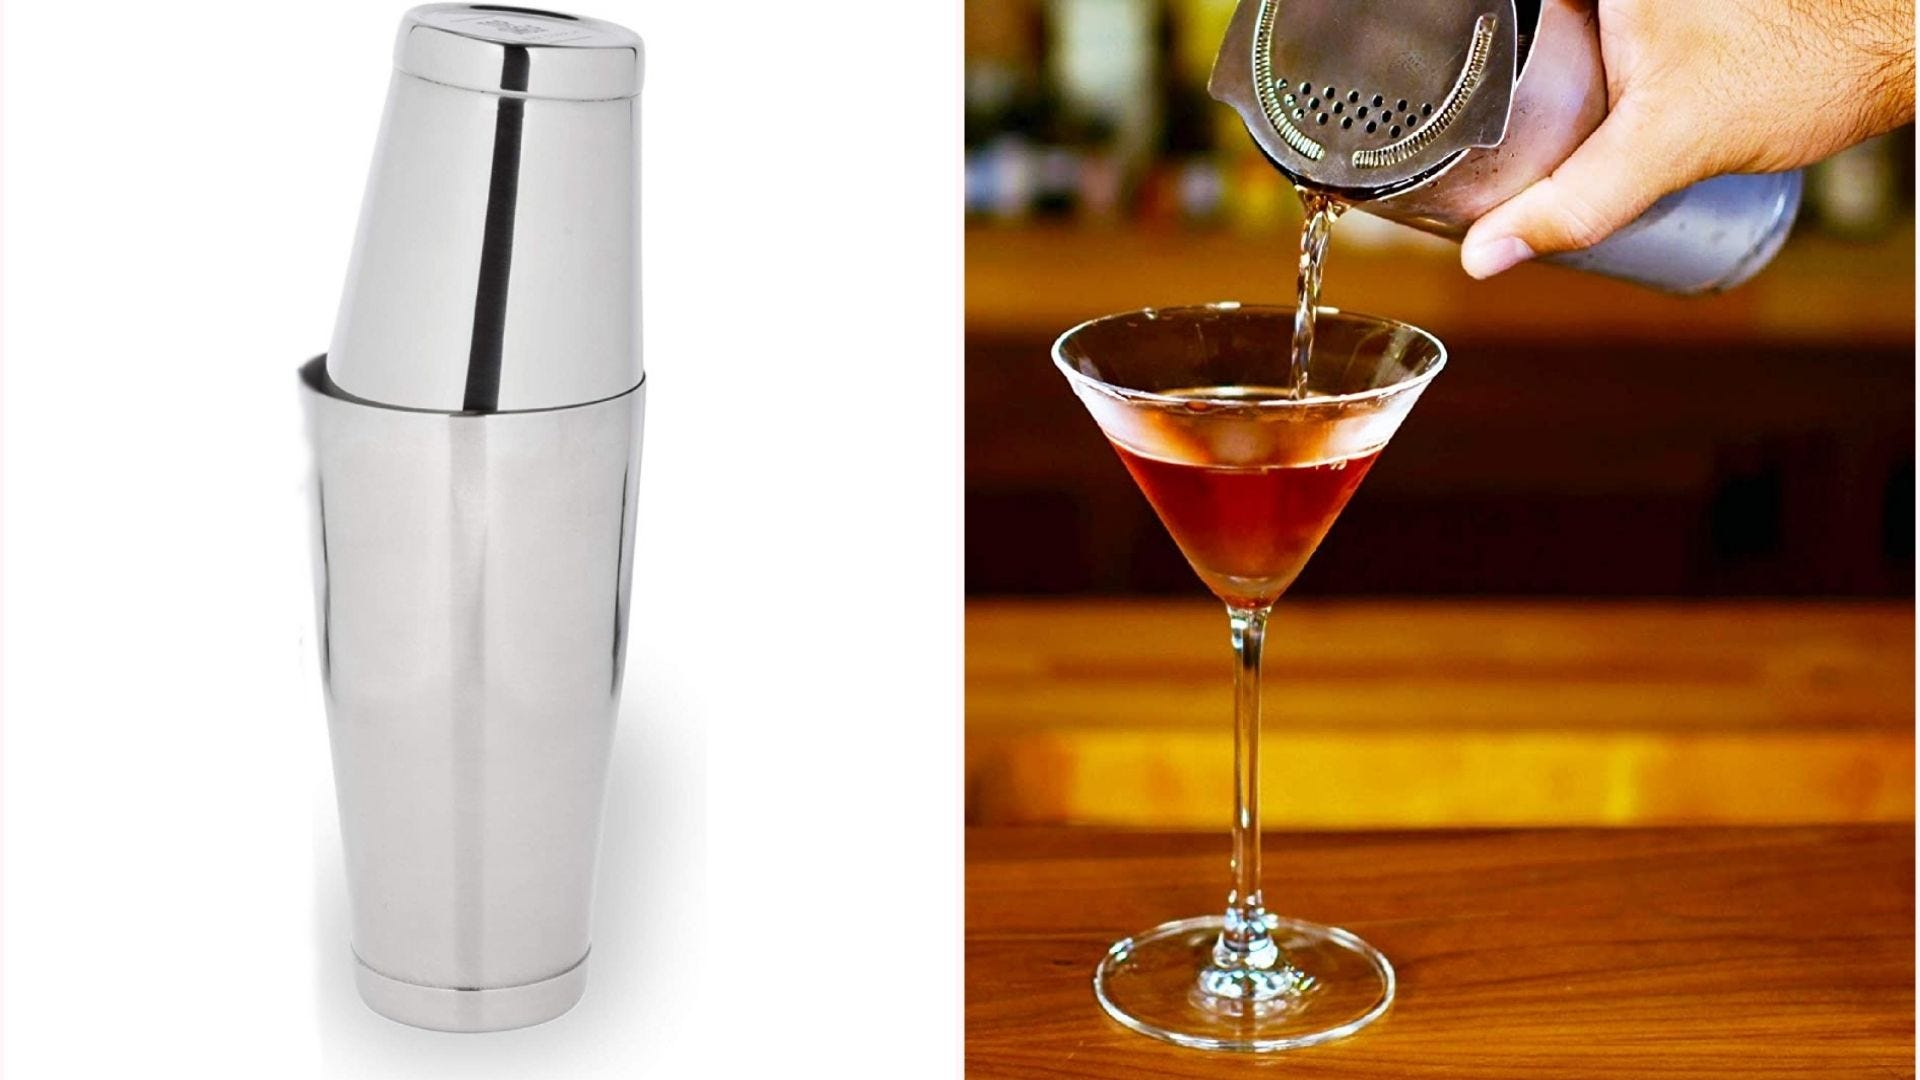 silver Boston cocktail shaker, with one cup on top of the other; a cocktail is being poured from the shaker into a glass in another picture